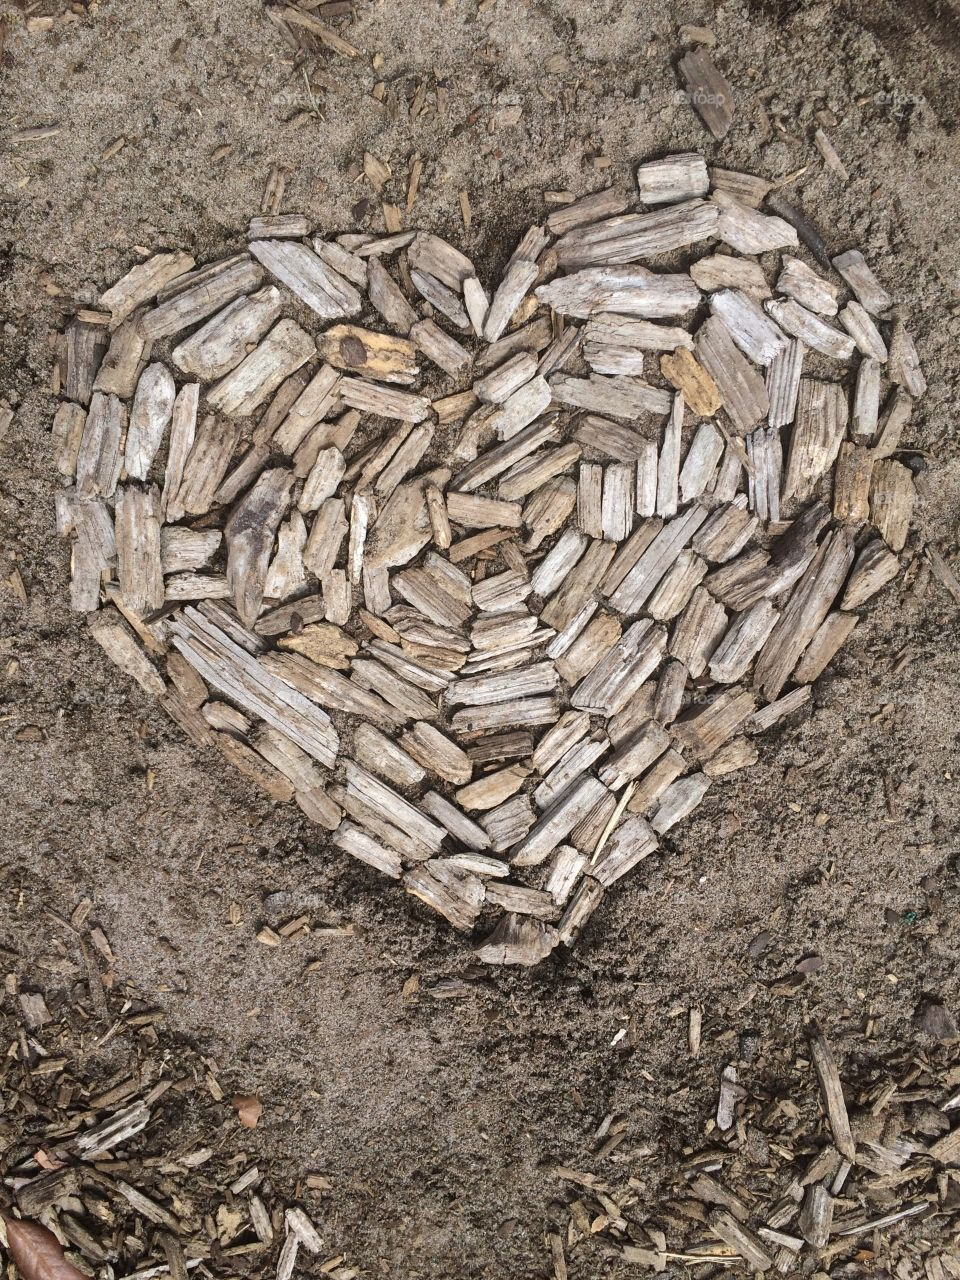 Michaelangelo have seen great heroes hidden in the white blocks of stone brought to him. A builder sees a magnificent house in the heap of materials on a construction site. What did you see in the wood chips scattered on a playground? A happy story, I hope.